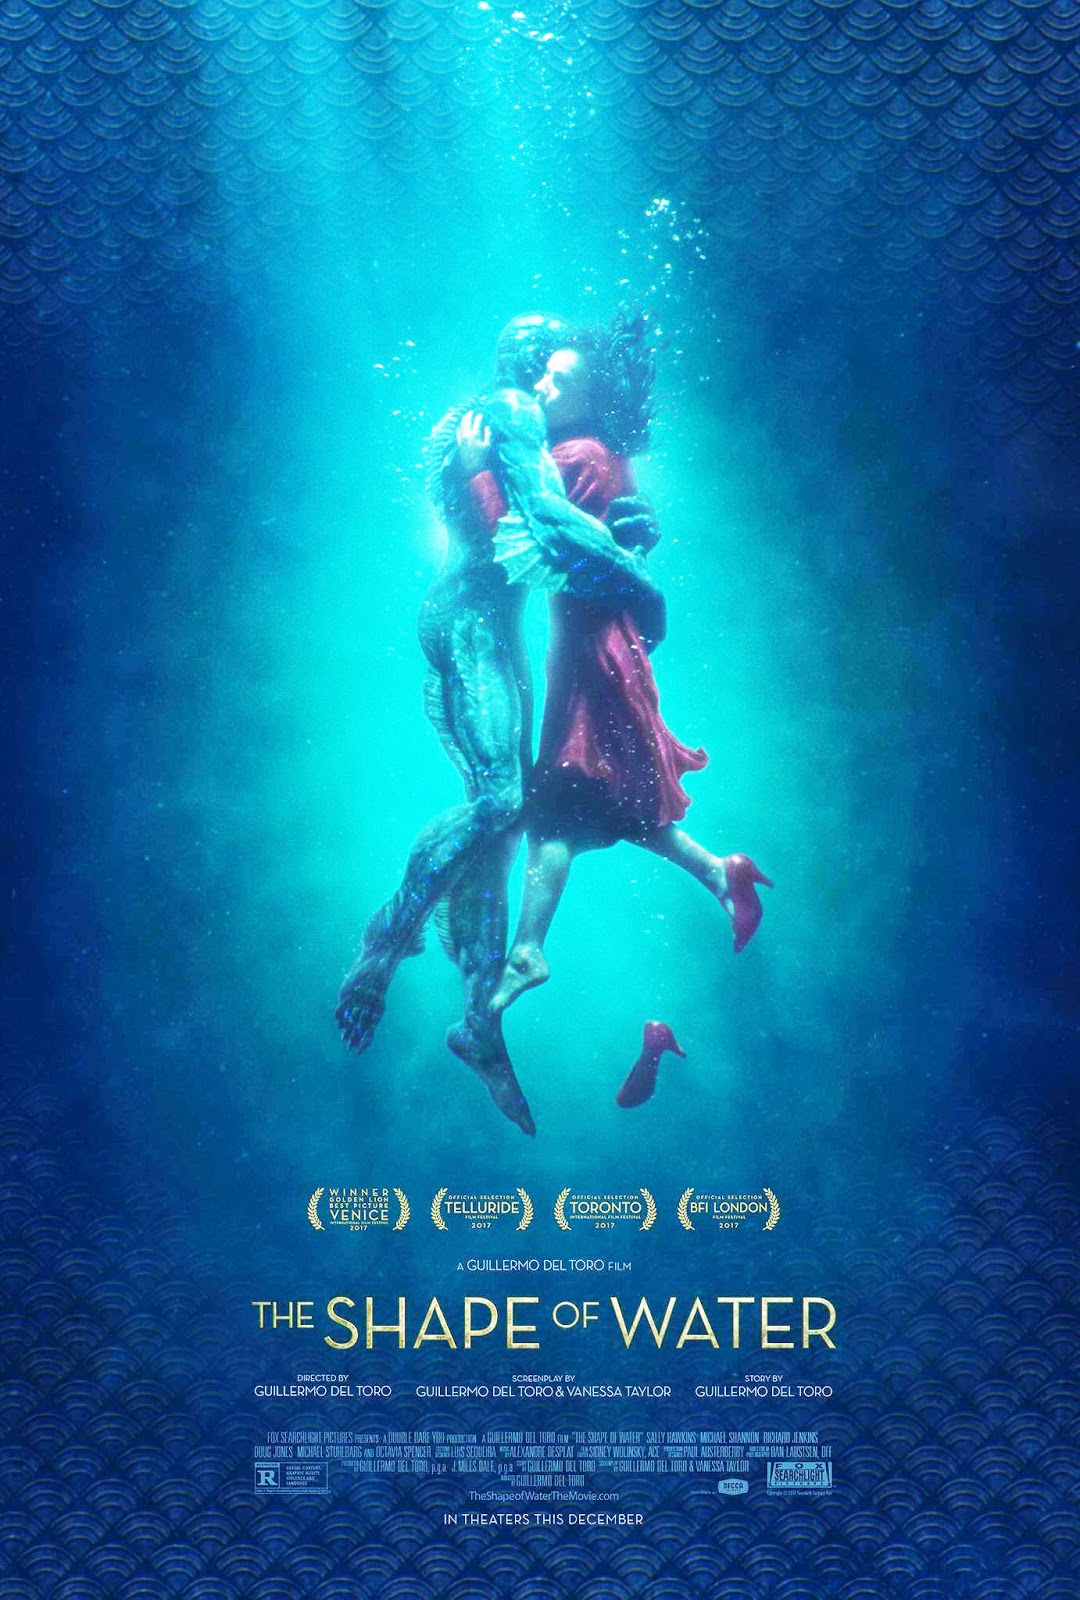 beverly in movieland at the heart of �the shape of water�